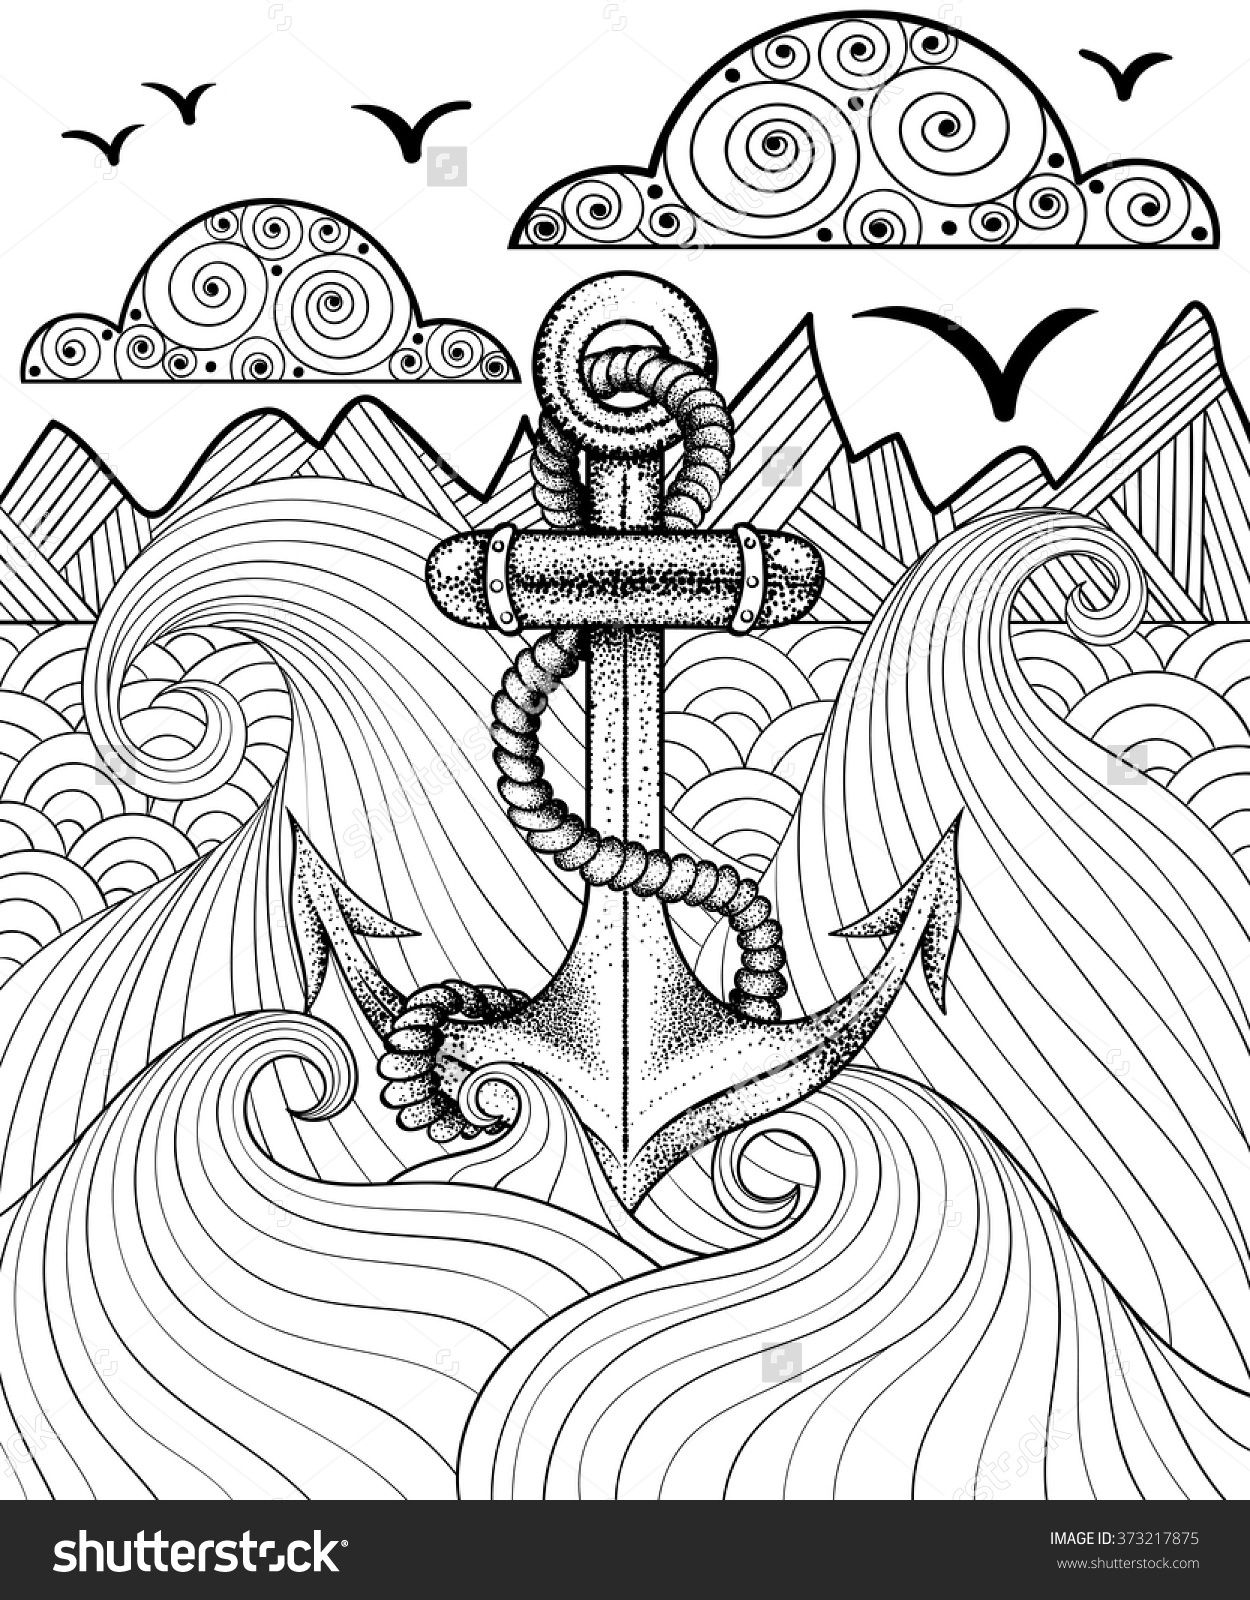 Vector Zentangle Print For Adult Coloring Page Hand Drawn